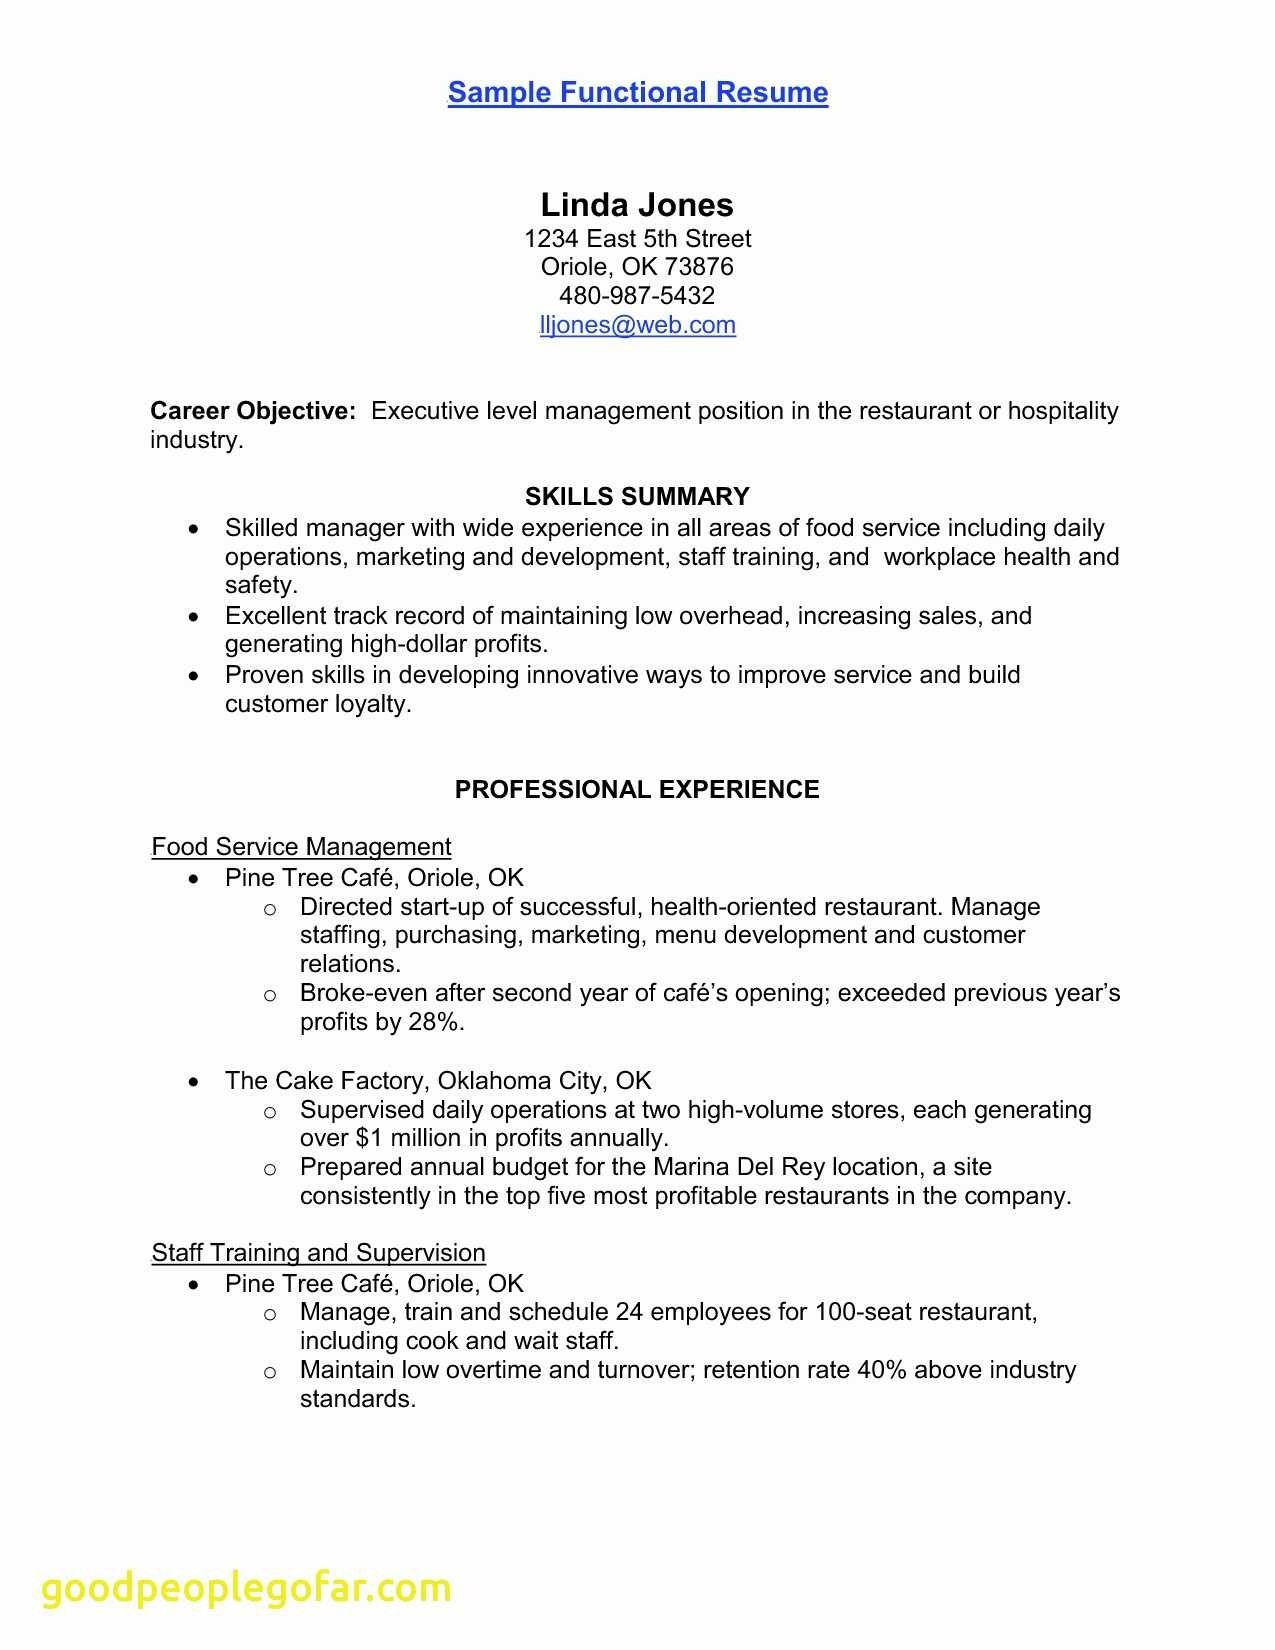 Electrical Engineering Resume - Electrical Engineer Resume Ressume Template Lovely Type Resume